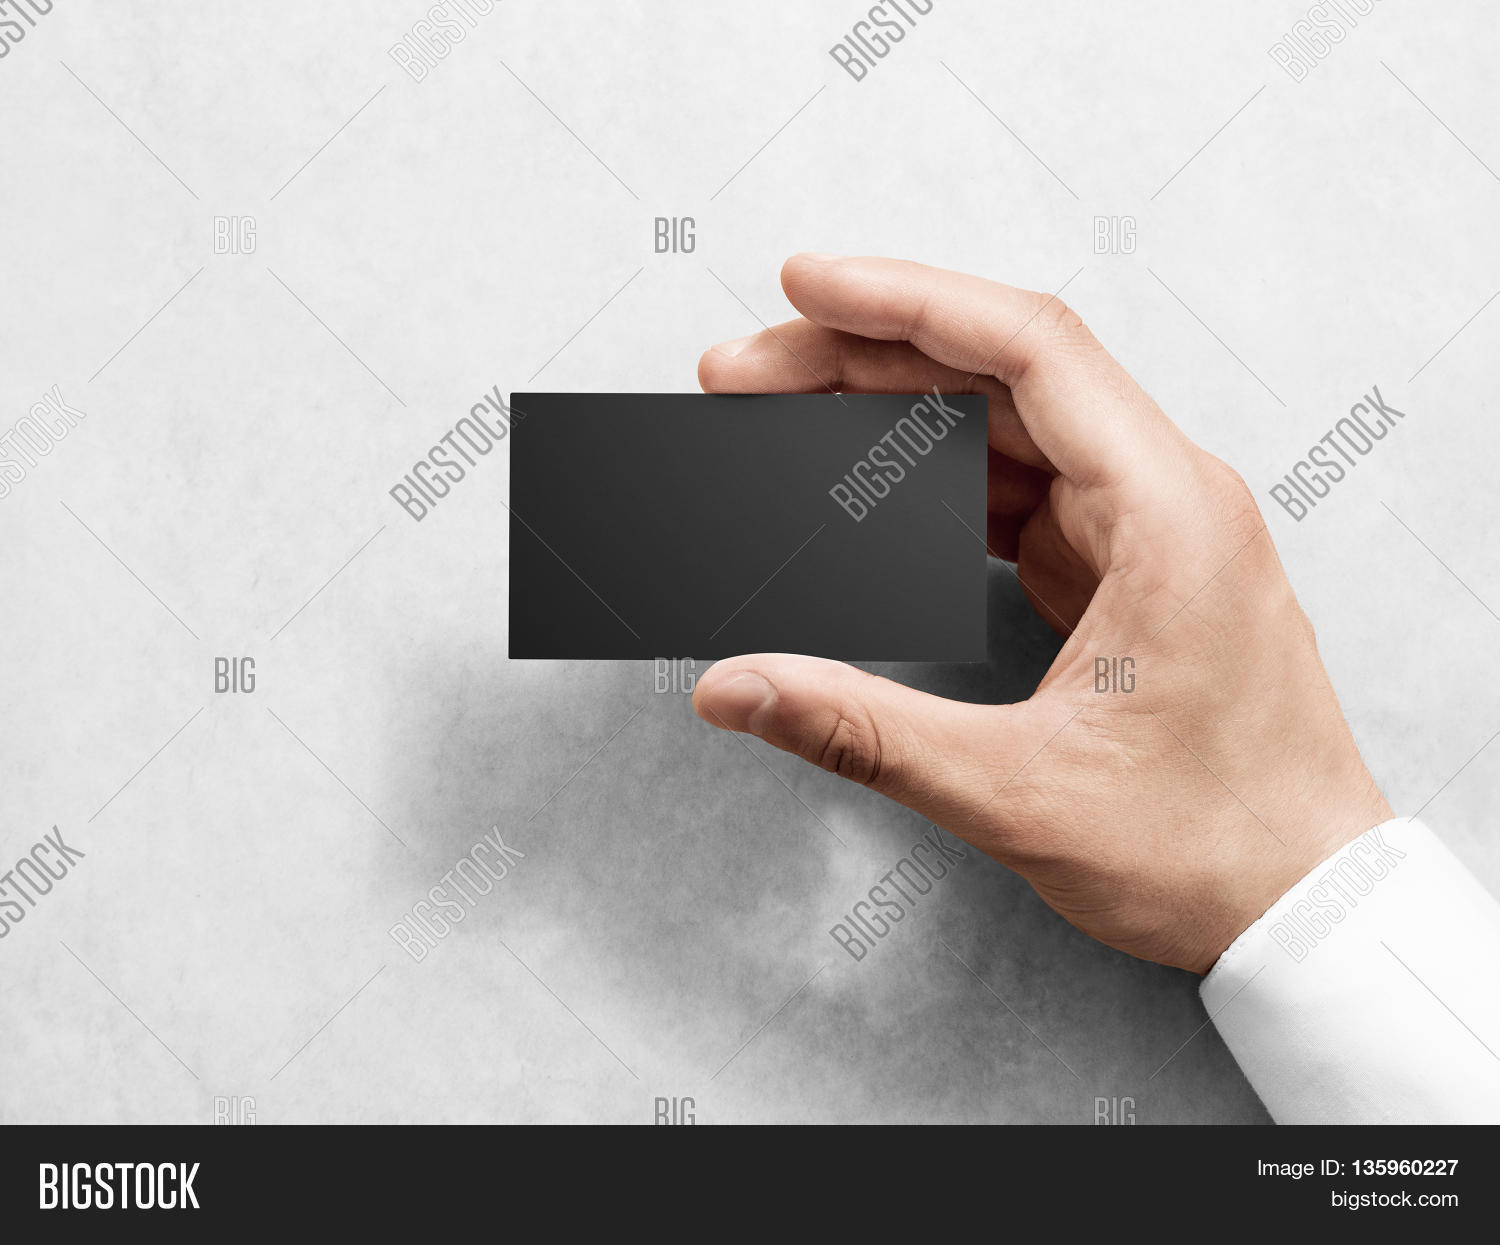 Hand Holding Blank Plain Black Image & Photo | Bigstock